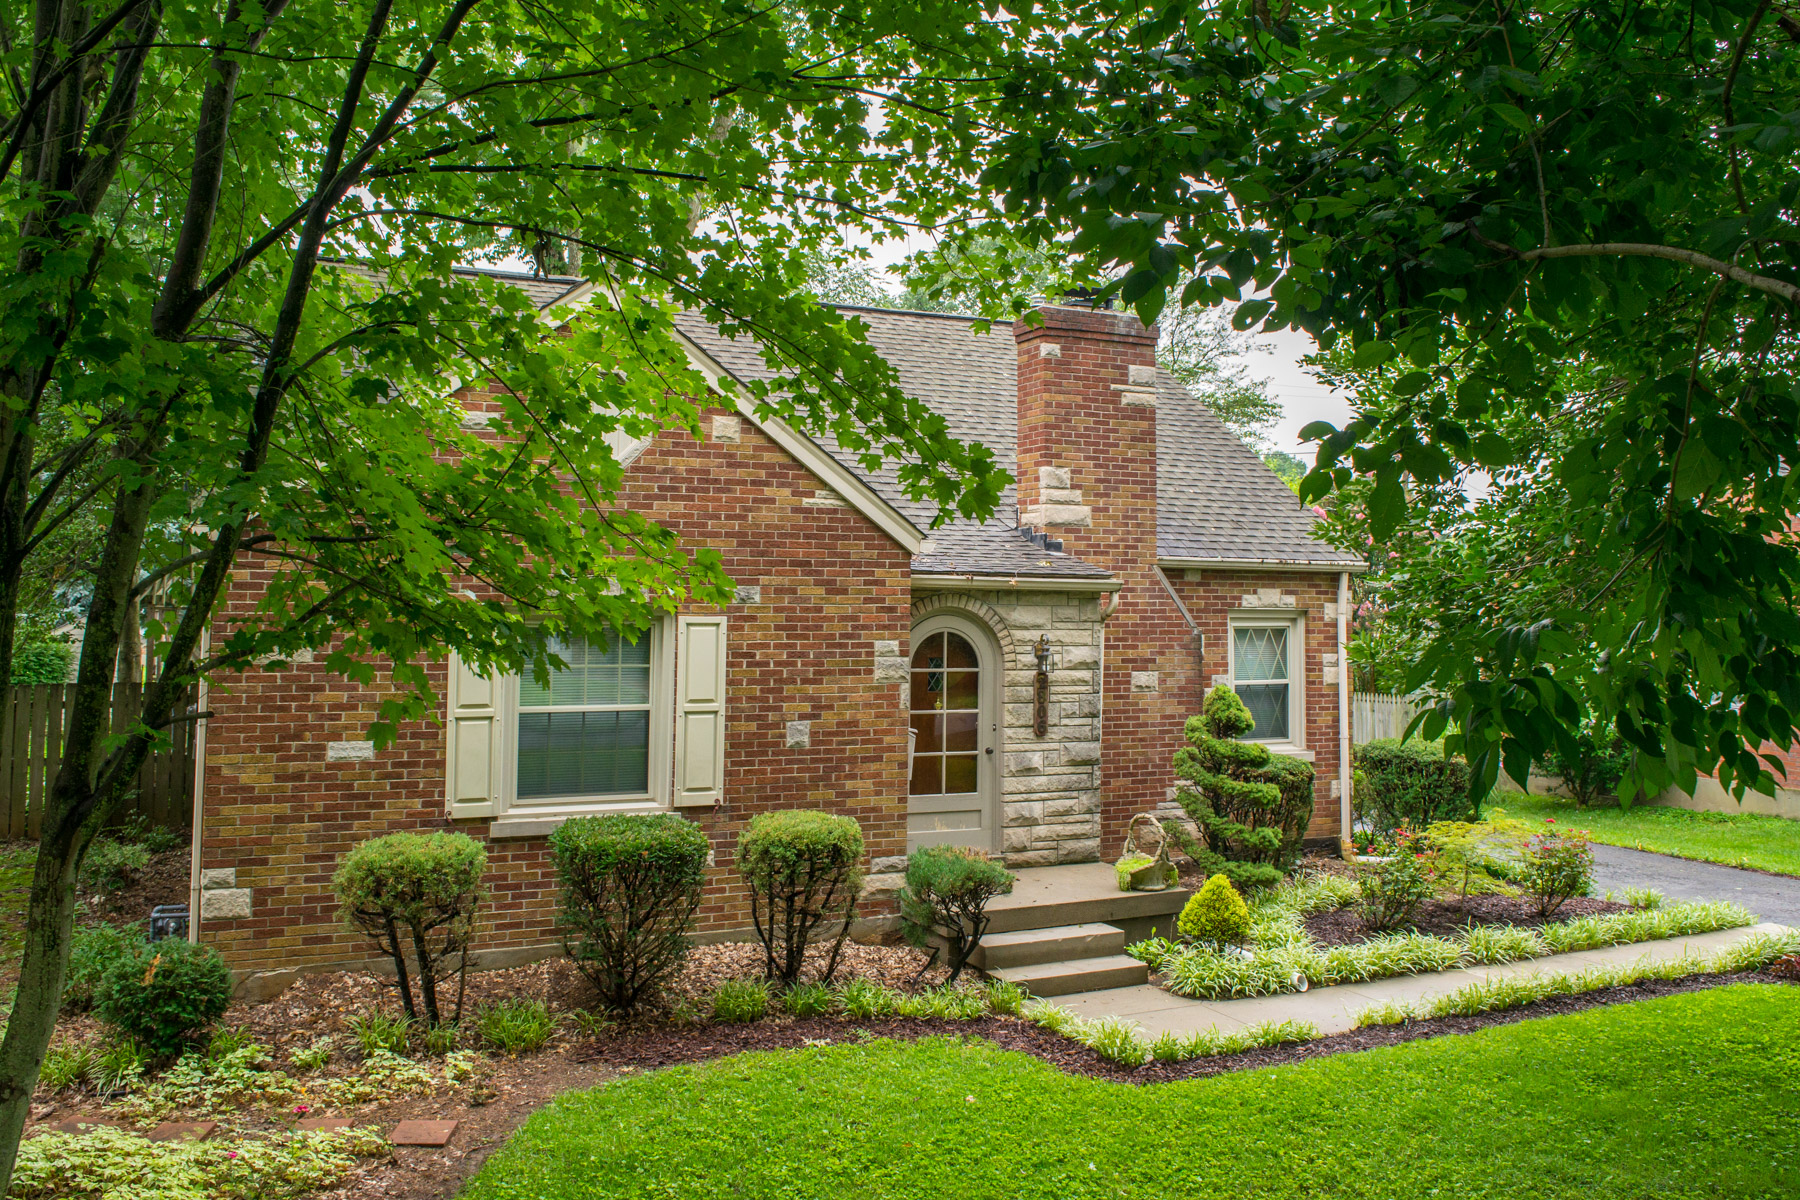 Single Family Home for Sale at 2806 Woodward Drive Louisville, Kentucky 40220 United States